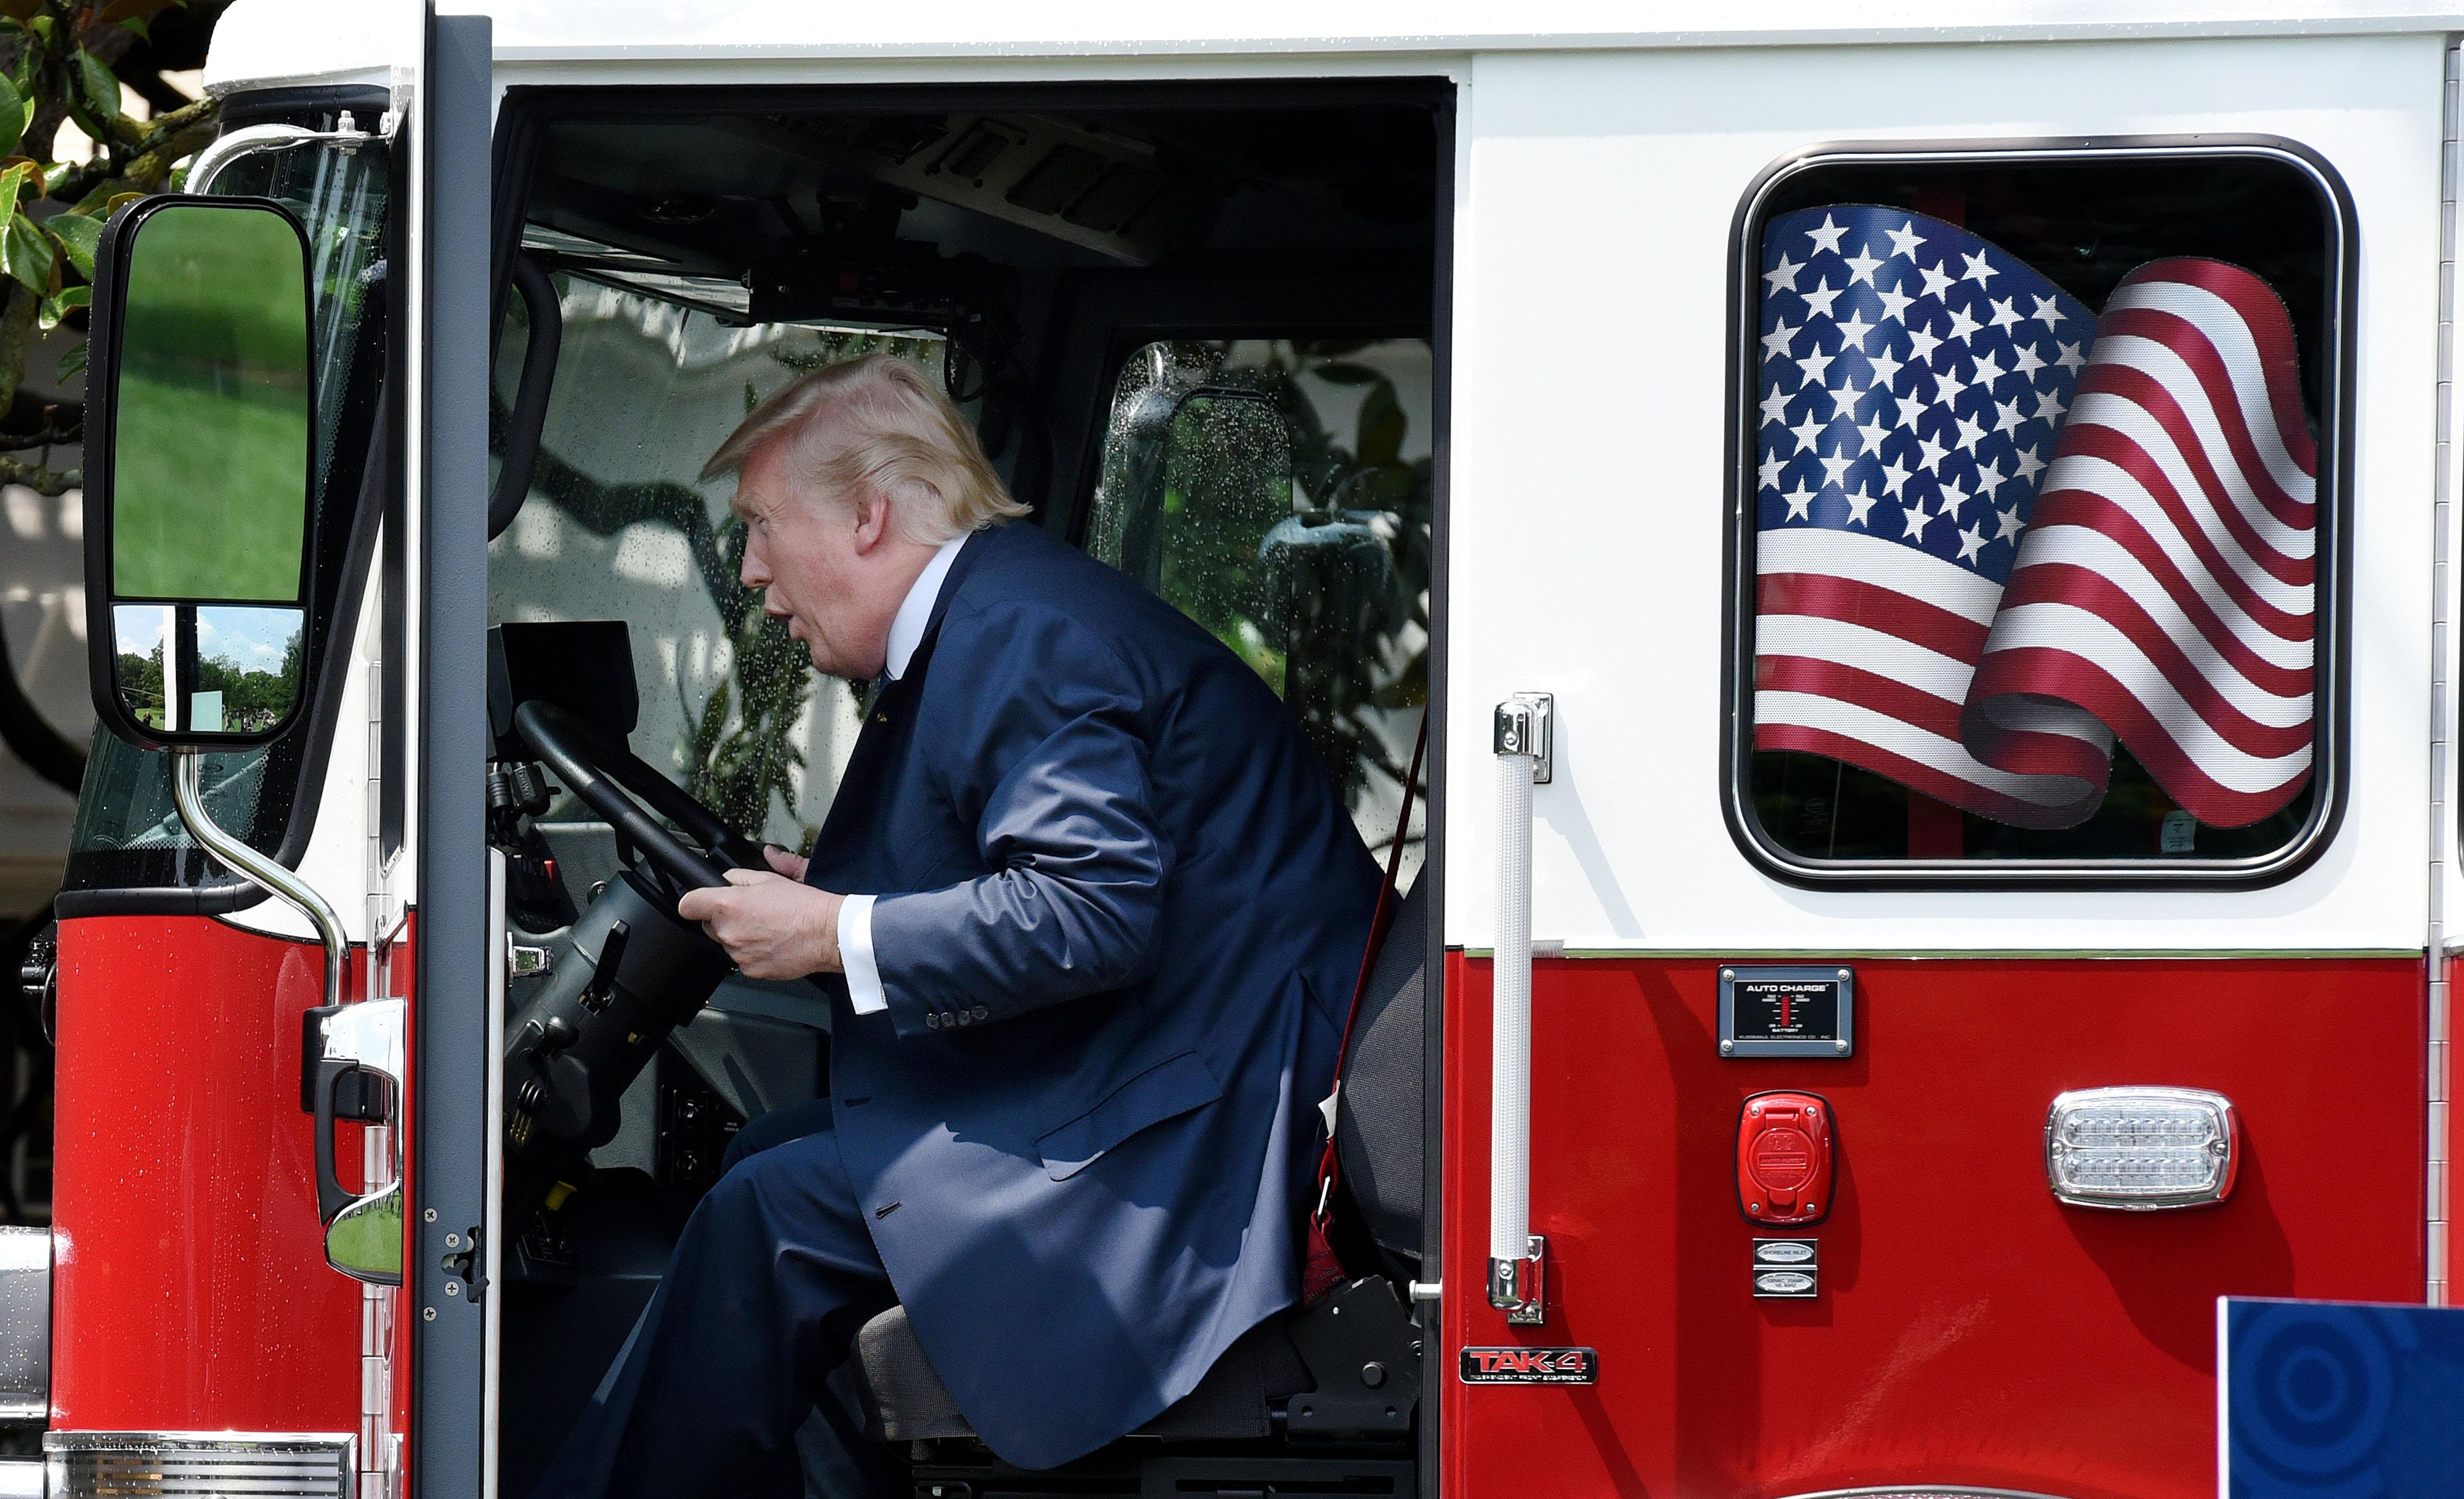 President Trump examines a fire truck from Wisconsin-based manufacturer Pierce on the South Lawn during a 'Made in America' product showcase event at the White House in Washington, DC, on July 17, 2017.  / AFP PHOTO / Olivier Douliery        (Photo credit should read OLIVIER DOULIERY/AFP/Getty Images)